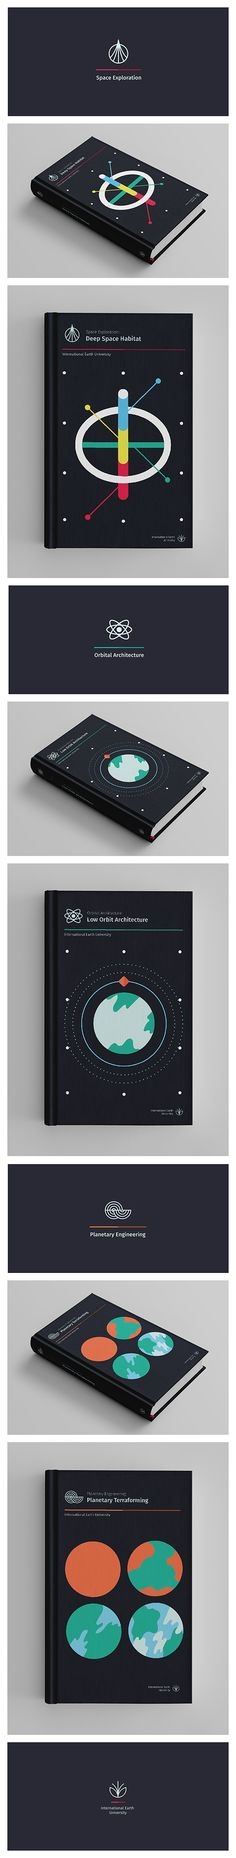 The Textbook Project by Slav Vitanov